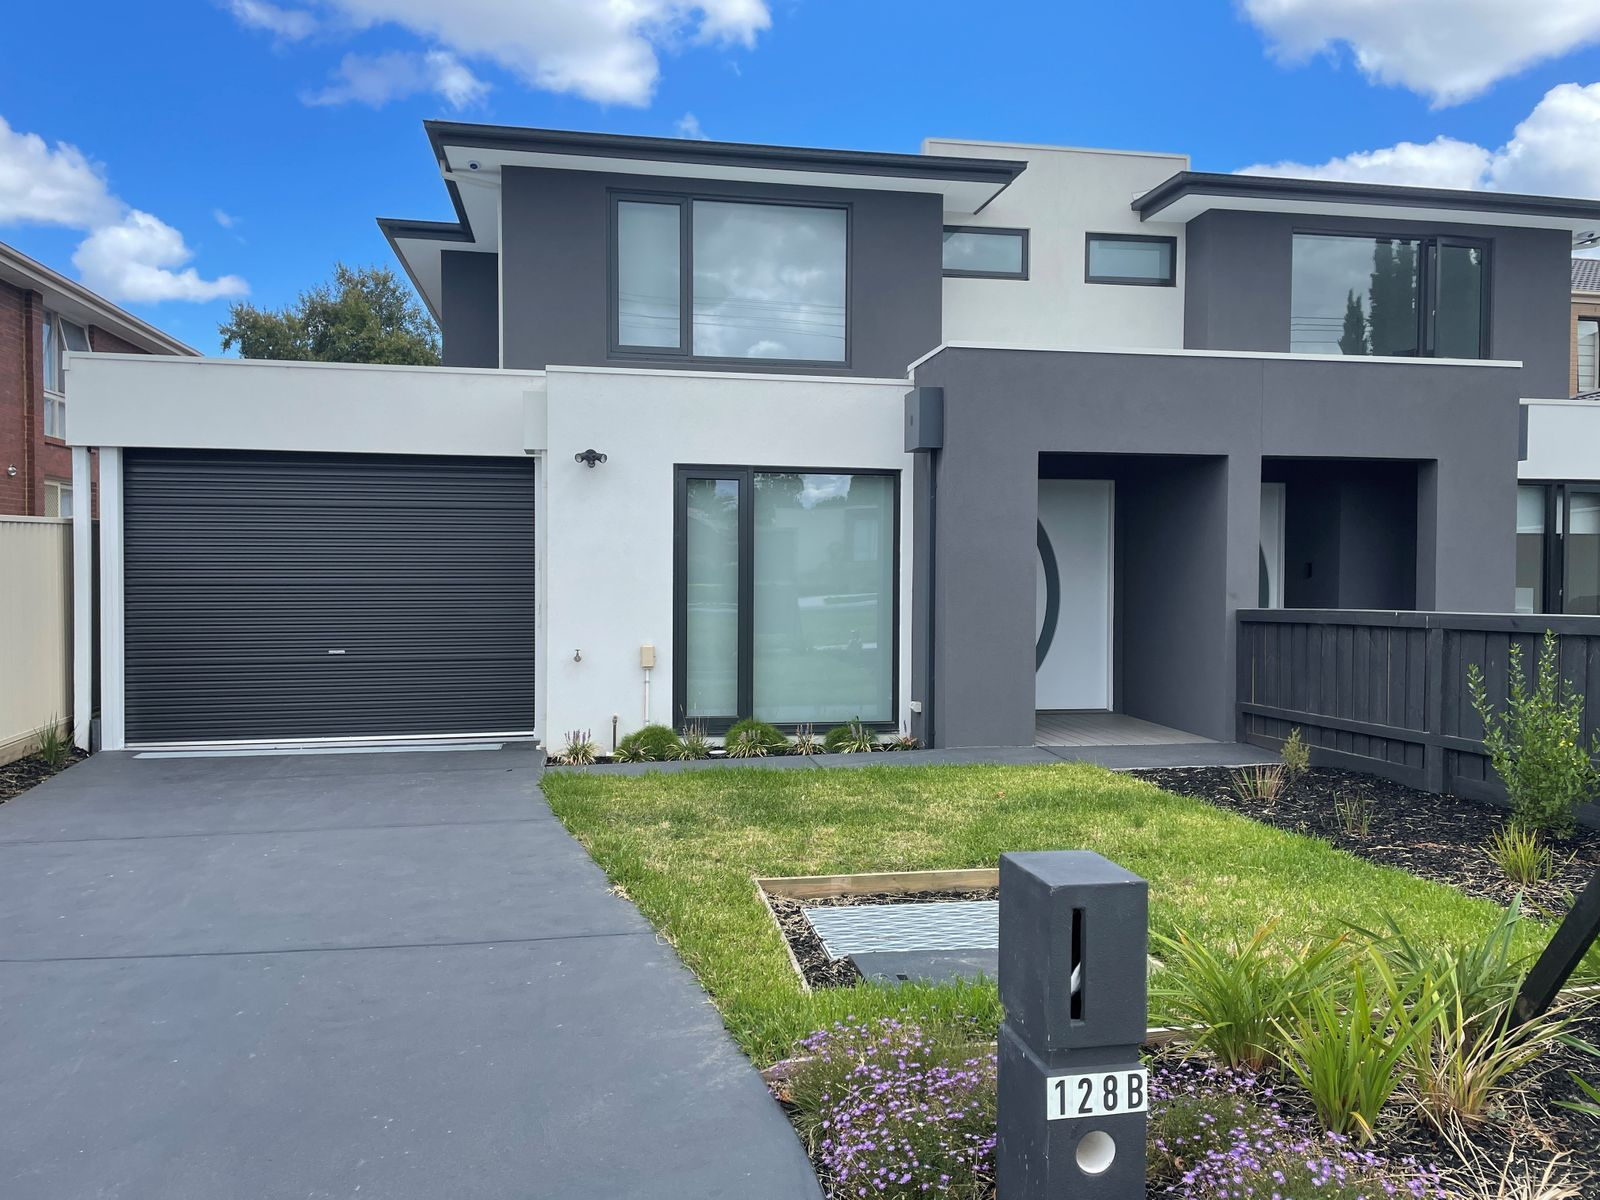 128B Cathies Lane, Wantirna South, VIC 3152